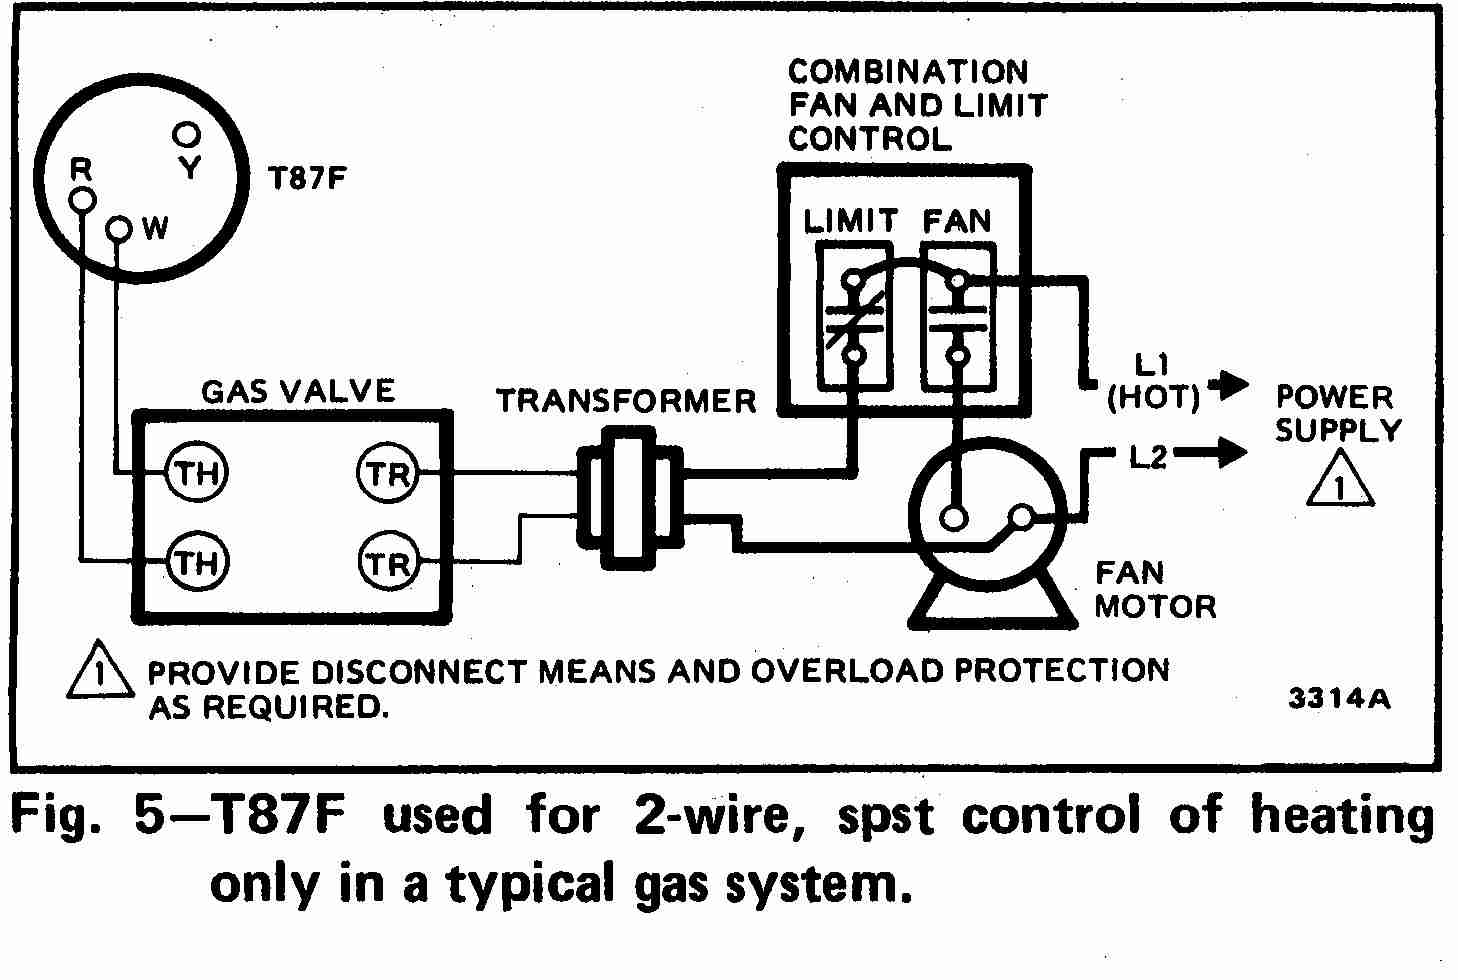 Room thermostat wiring diagrams for hvac systems honeywell t87f thermostat wiring diagram for 2 wire spst control of heating only in sciox Images